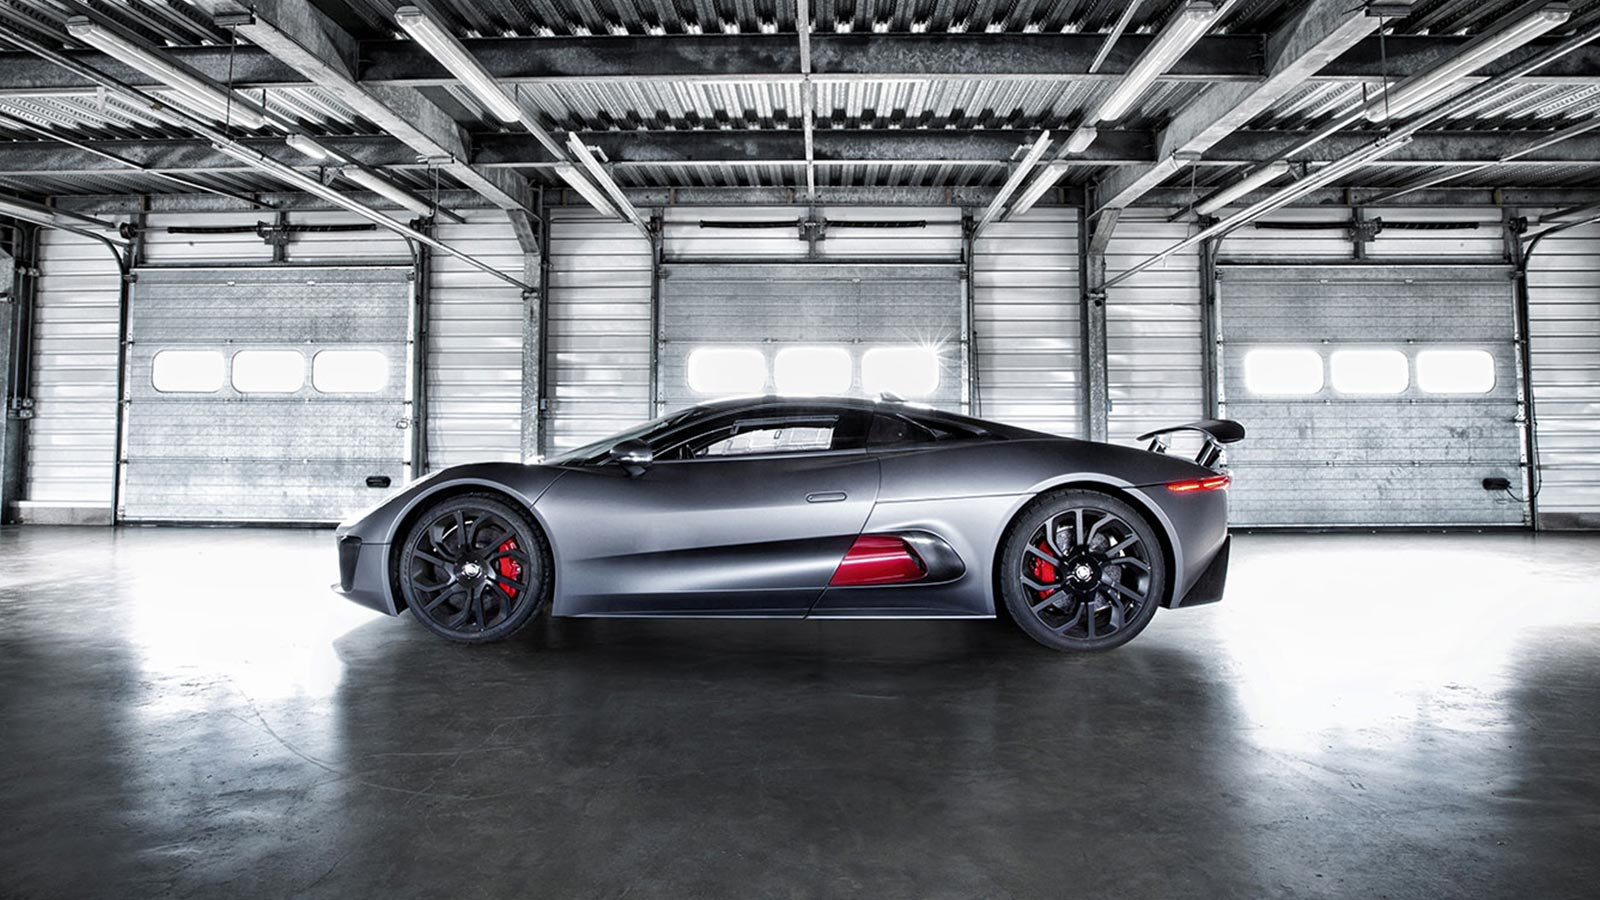 Jaguar C-X75 parked in a warehouse.